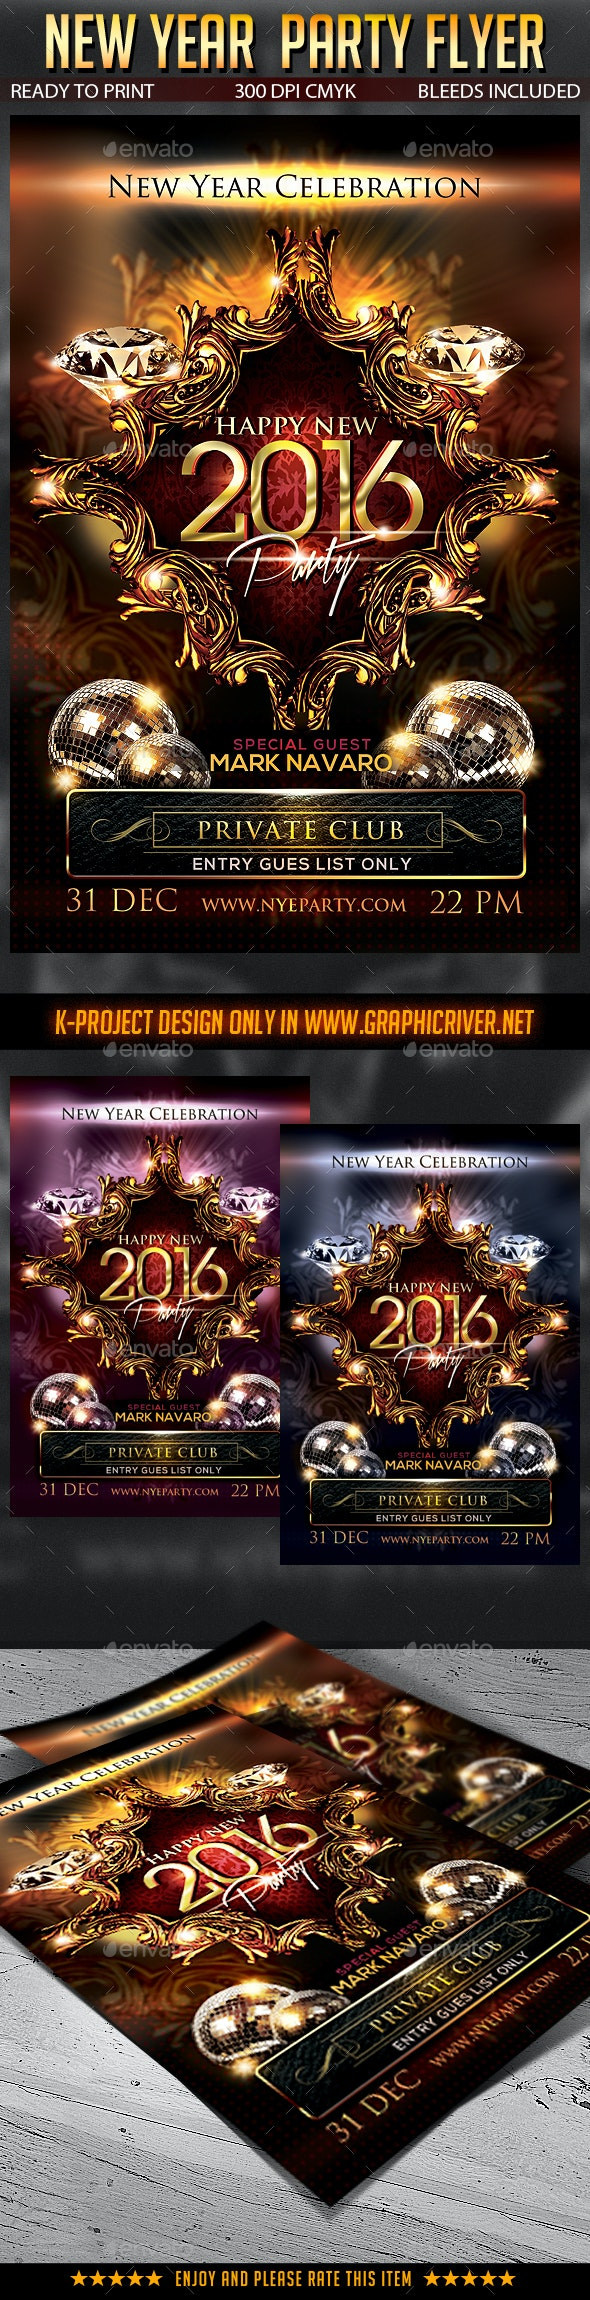 New Year Party Flyer v2 - Clubs & Parties Events